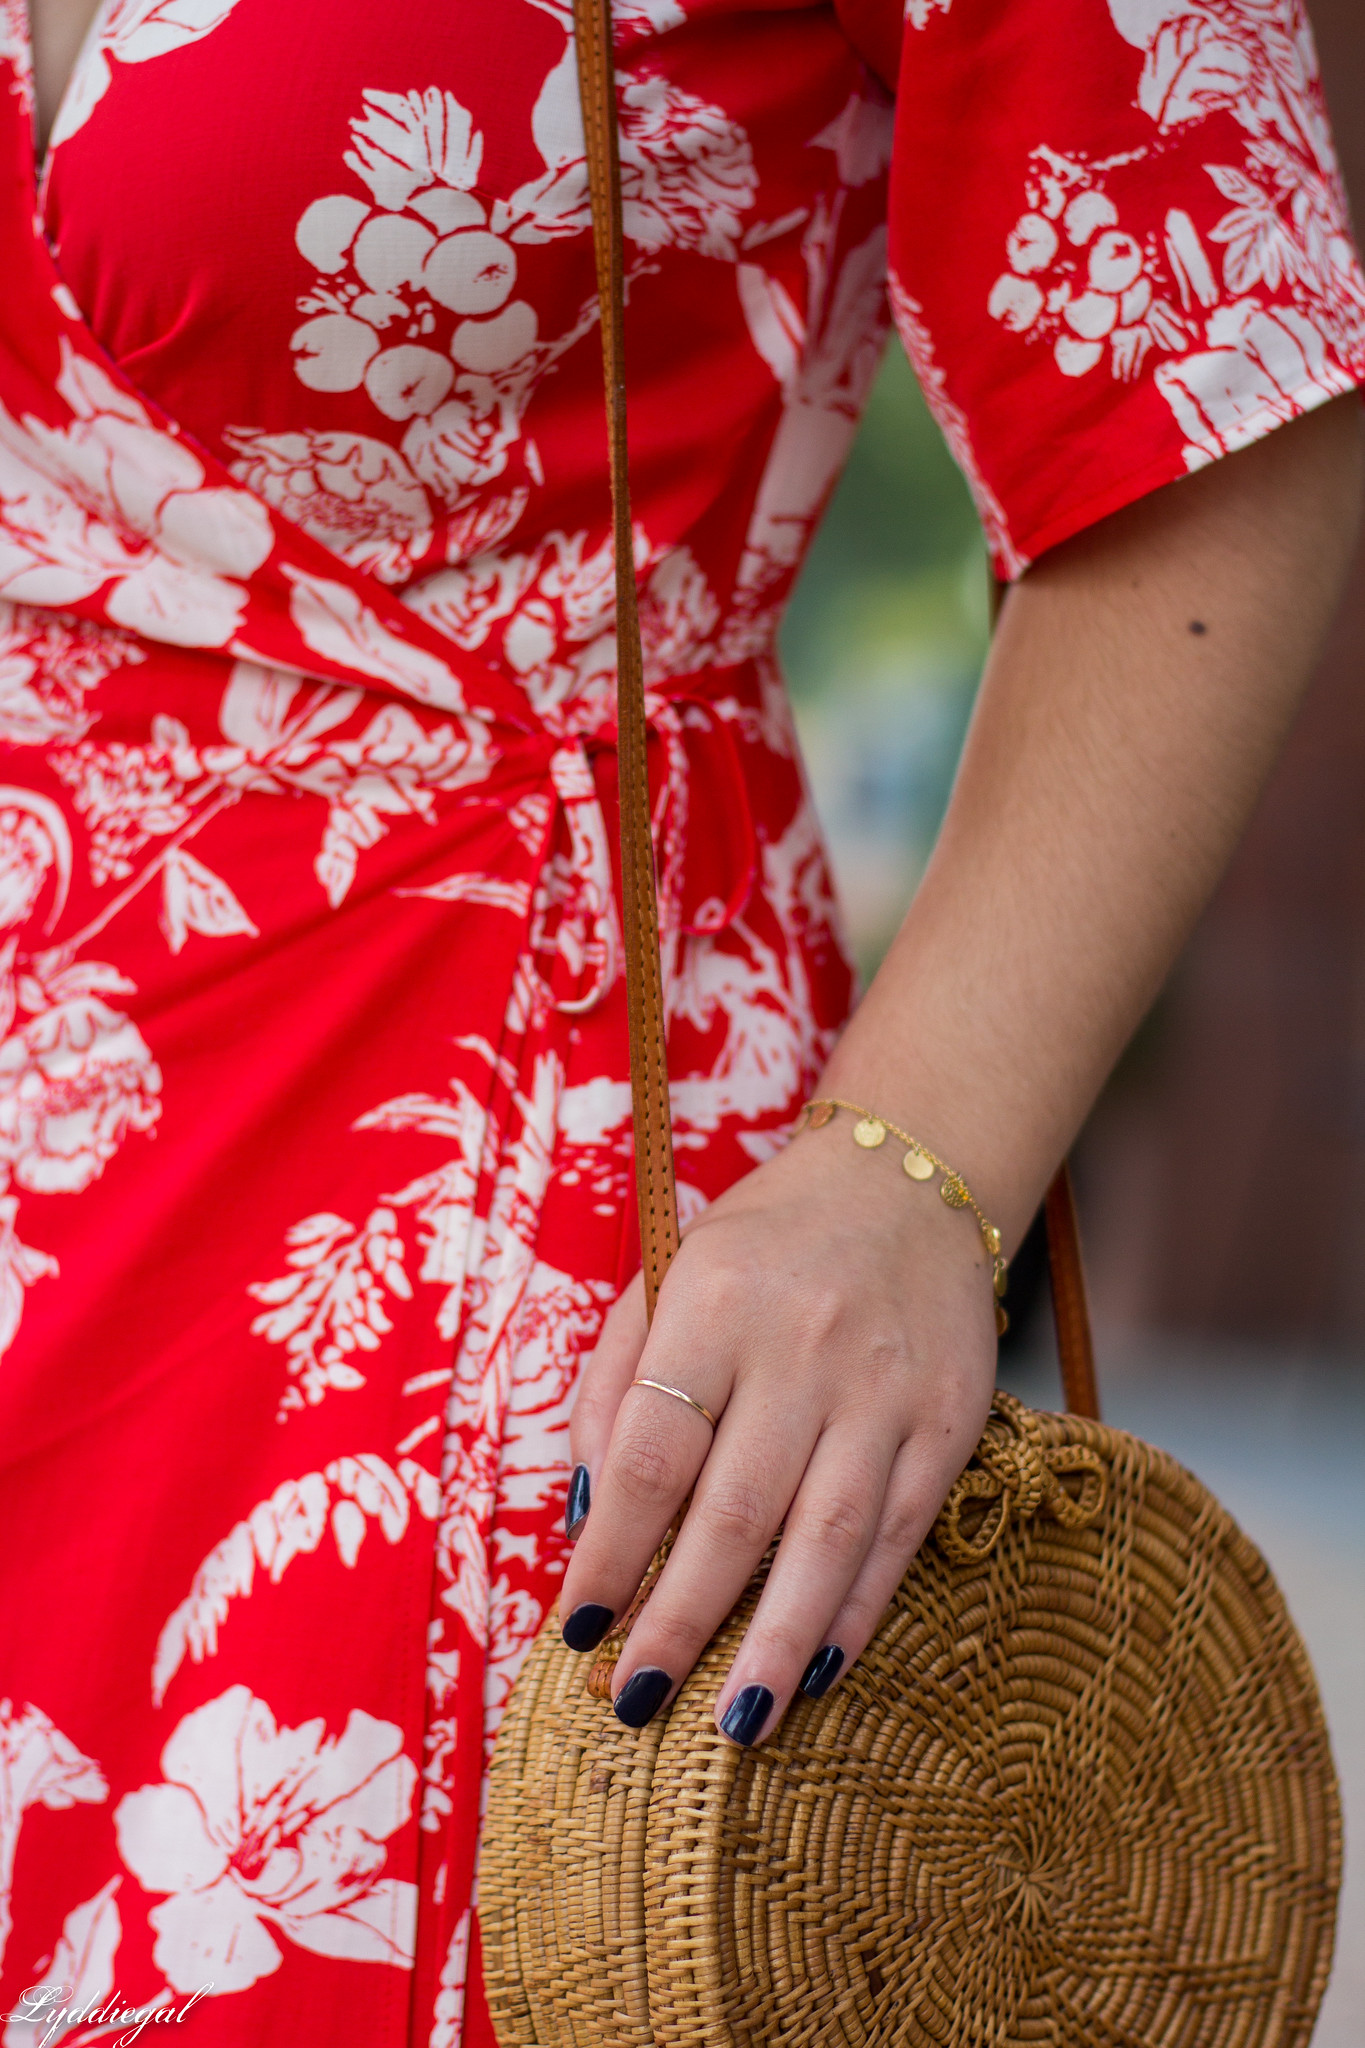 red and white printed wrap dress, round rattan bag, white mules-12.jpg